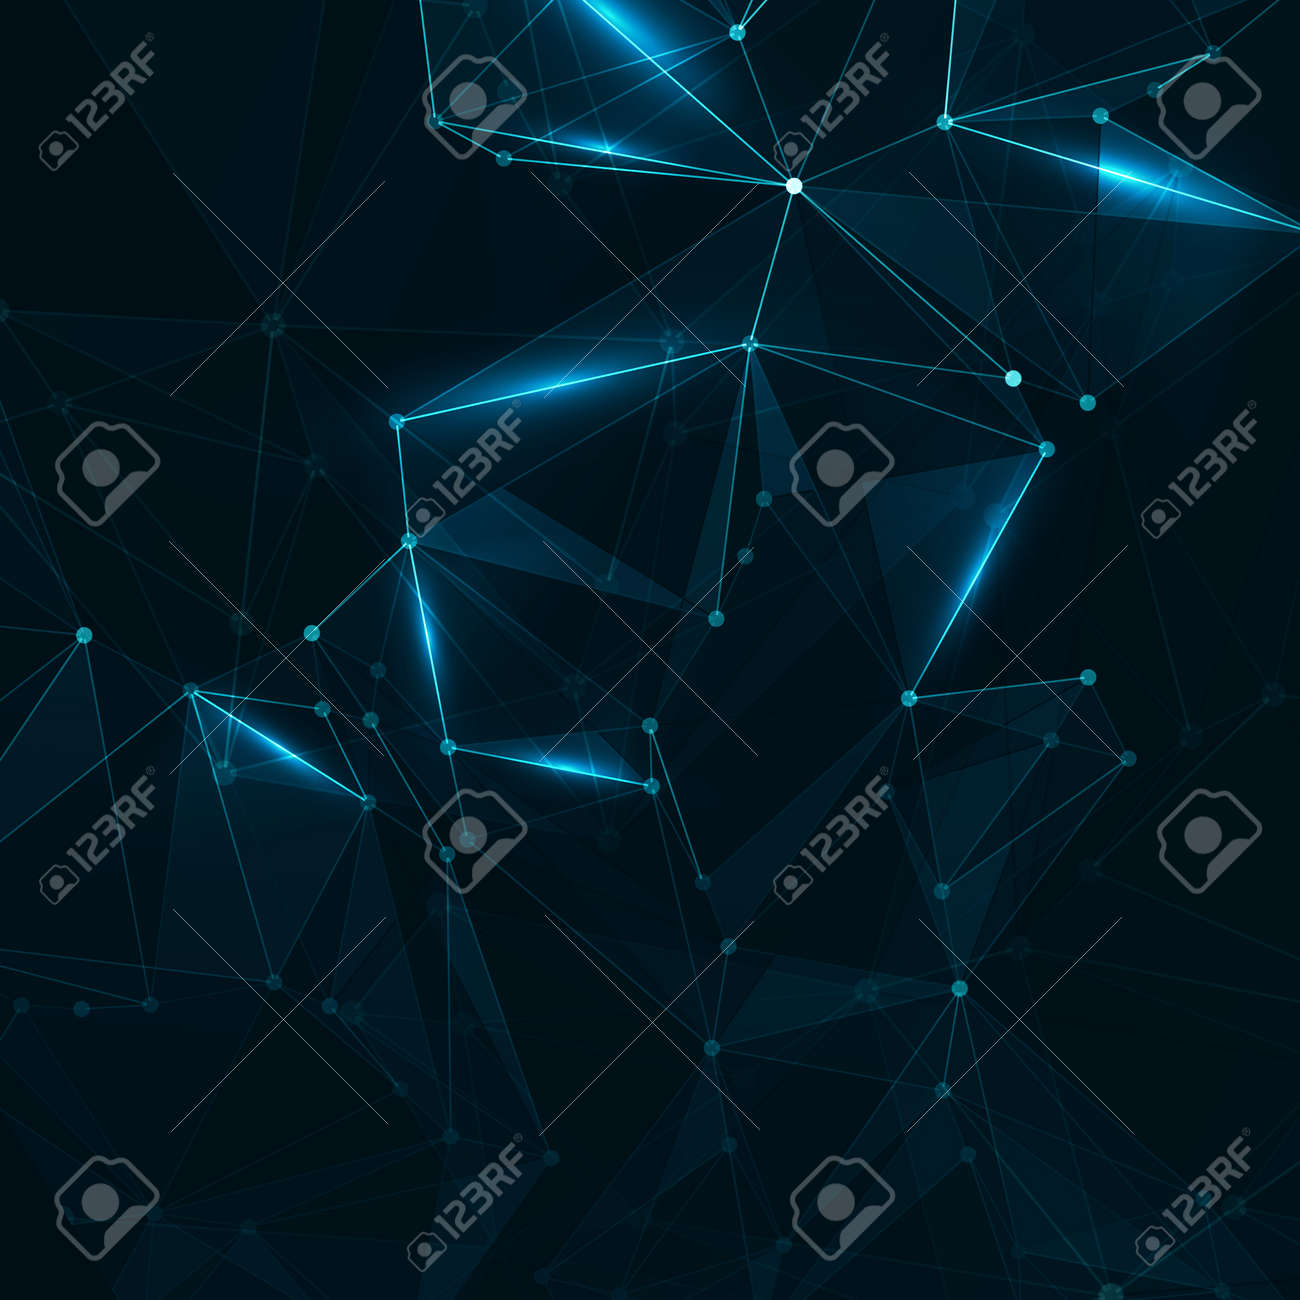 Abstract polygonal space. Background with connecting dots and lines. The concept illustration - 159516956